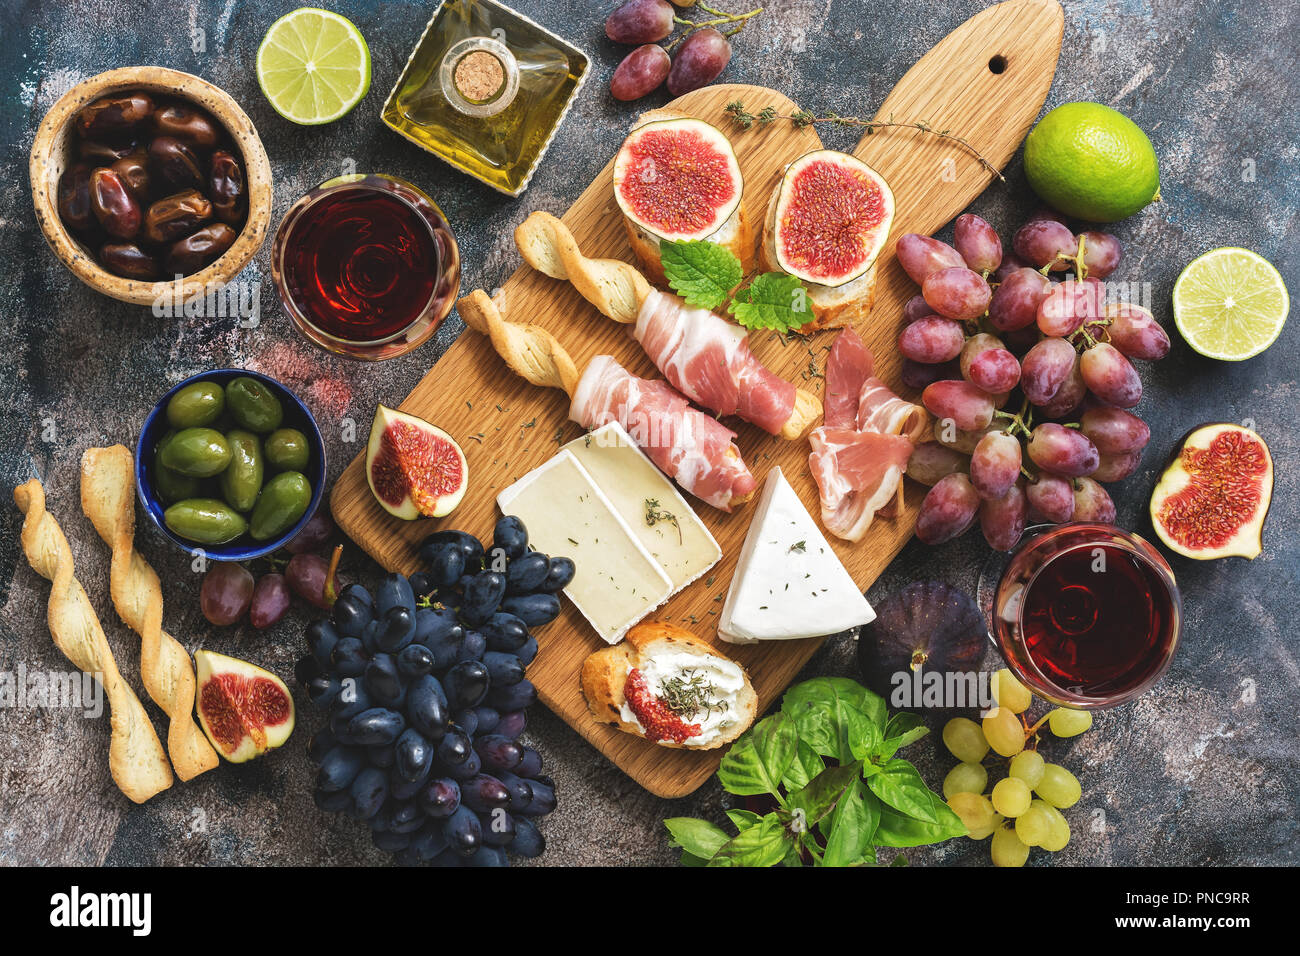 A variety of snacks, prosciutto,grapes, wine, cheese with mold, figs, olives on a rustic background. Top view,flat lay - Stock Image